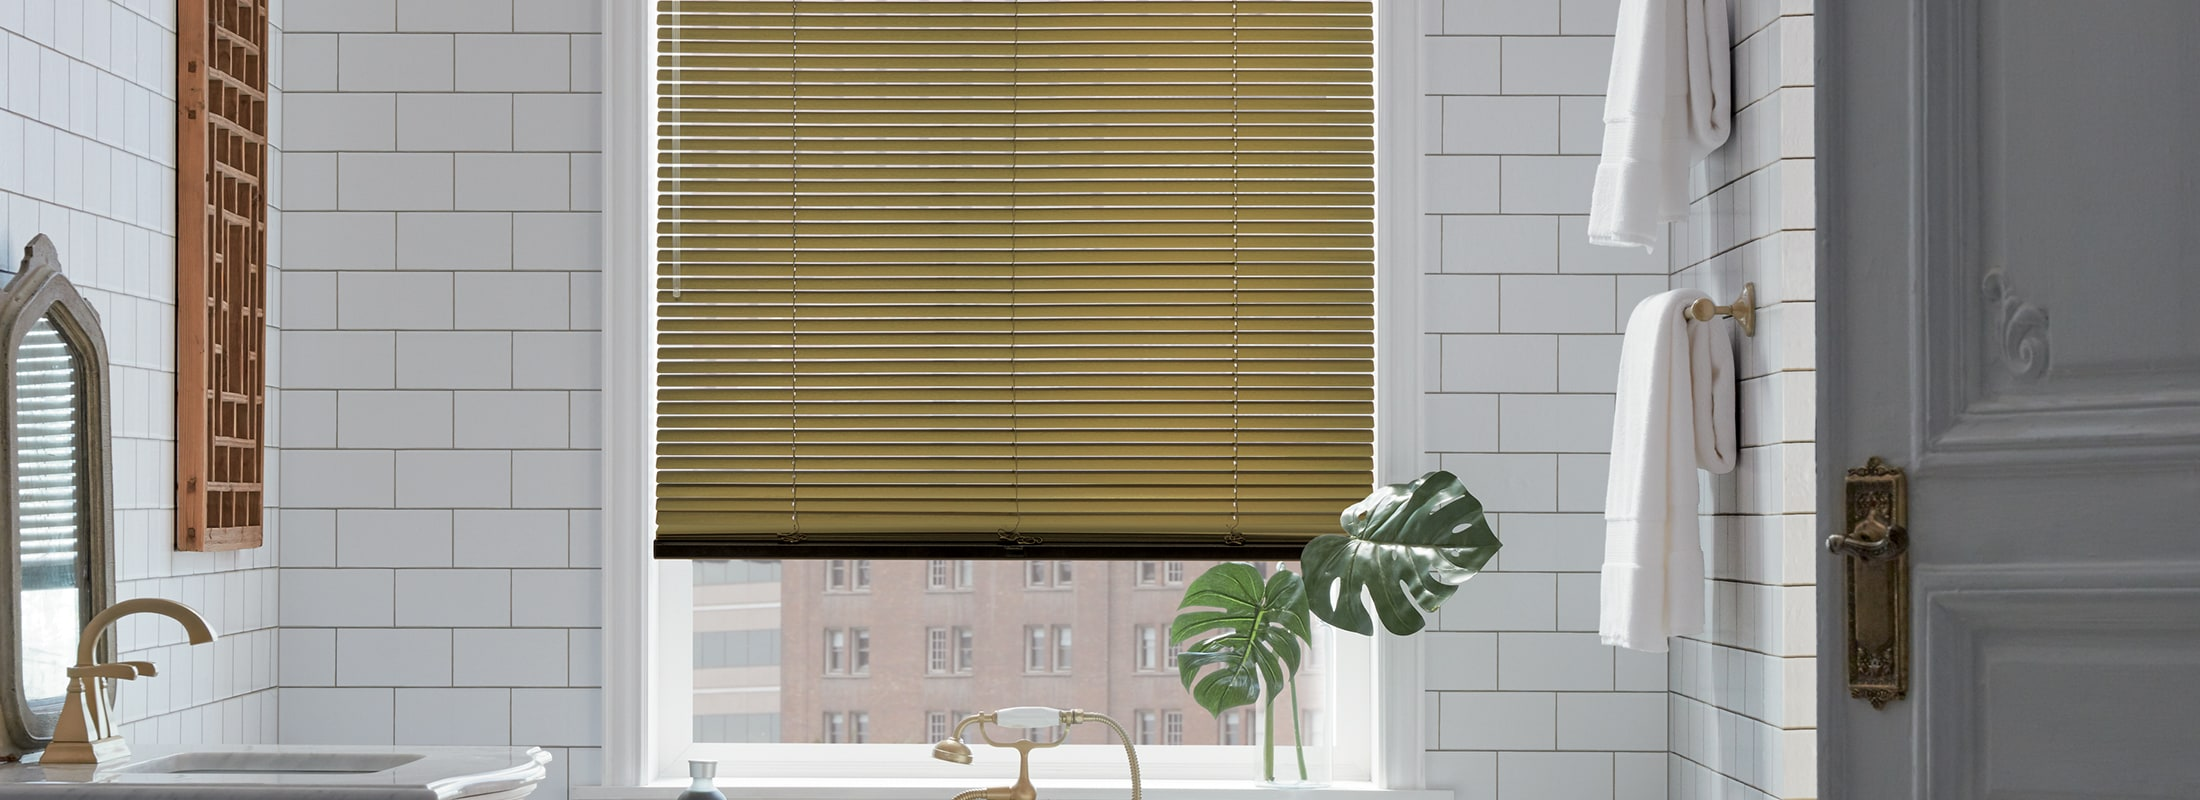 Metal Window Blinds Aluminum Blinds Hunter Douglas